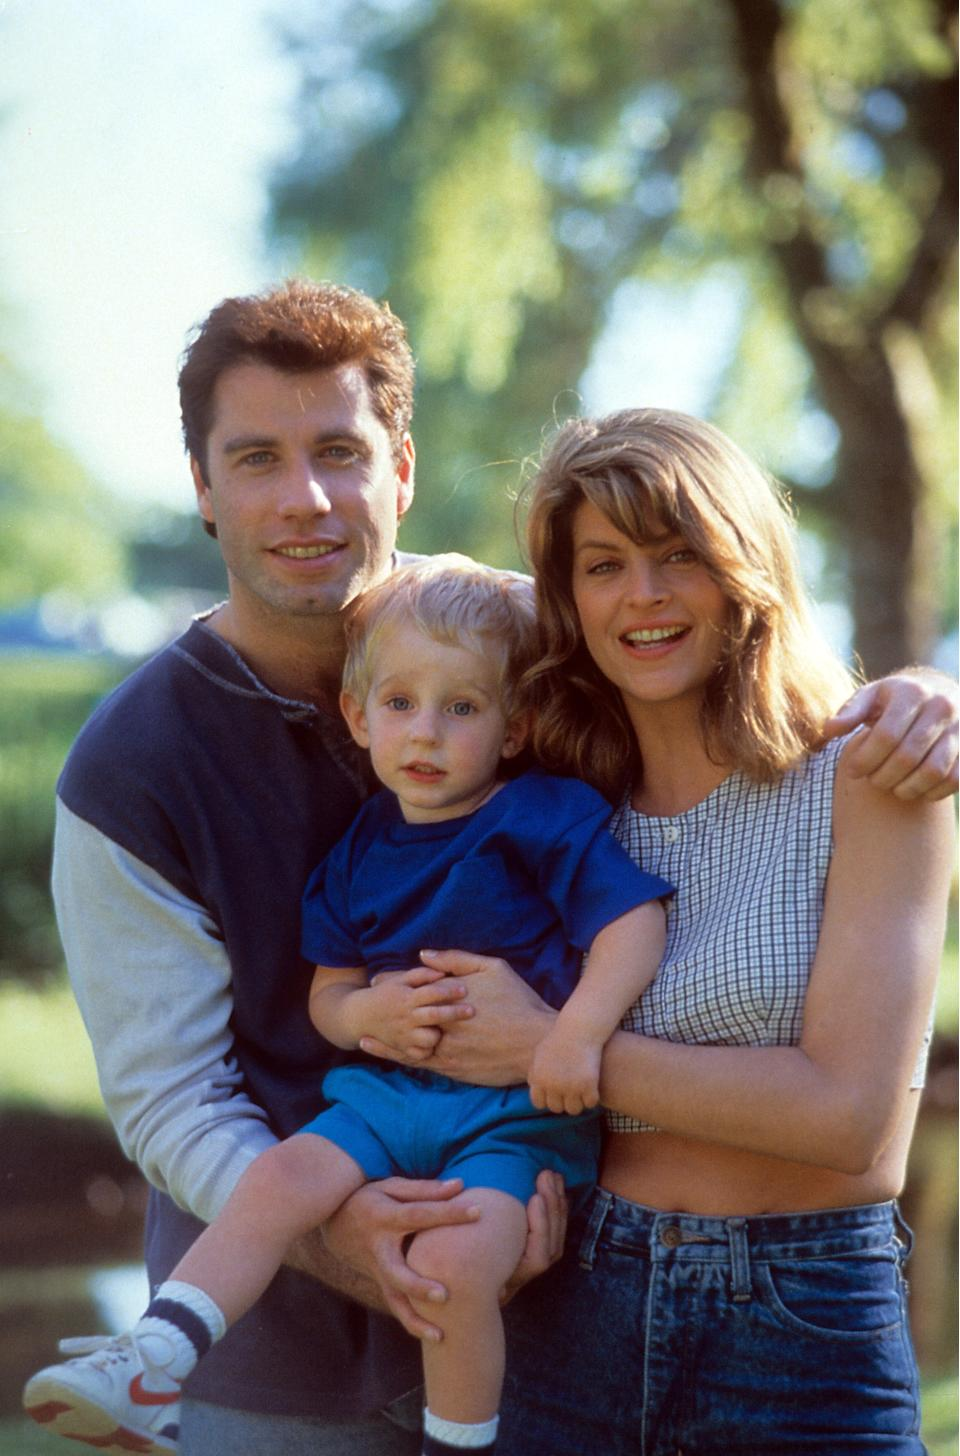 John Travolta and Kirstie Alley holding a child in a scene from the film 'Look Who's Talking', 1989. (Photo by TriStar Pictures/Getty Images)